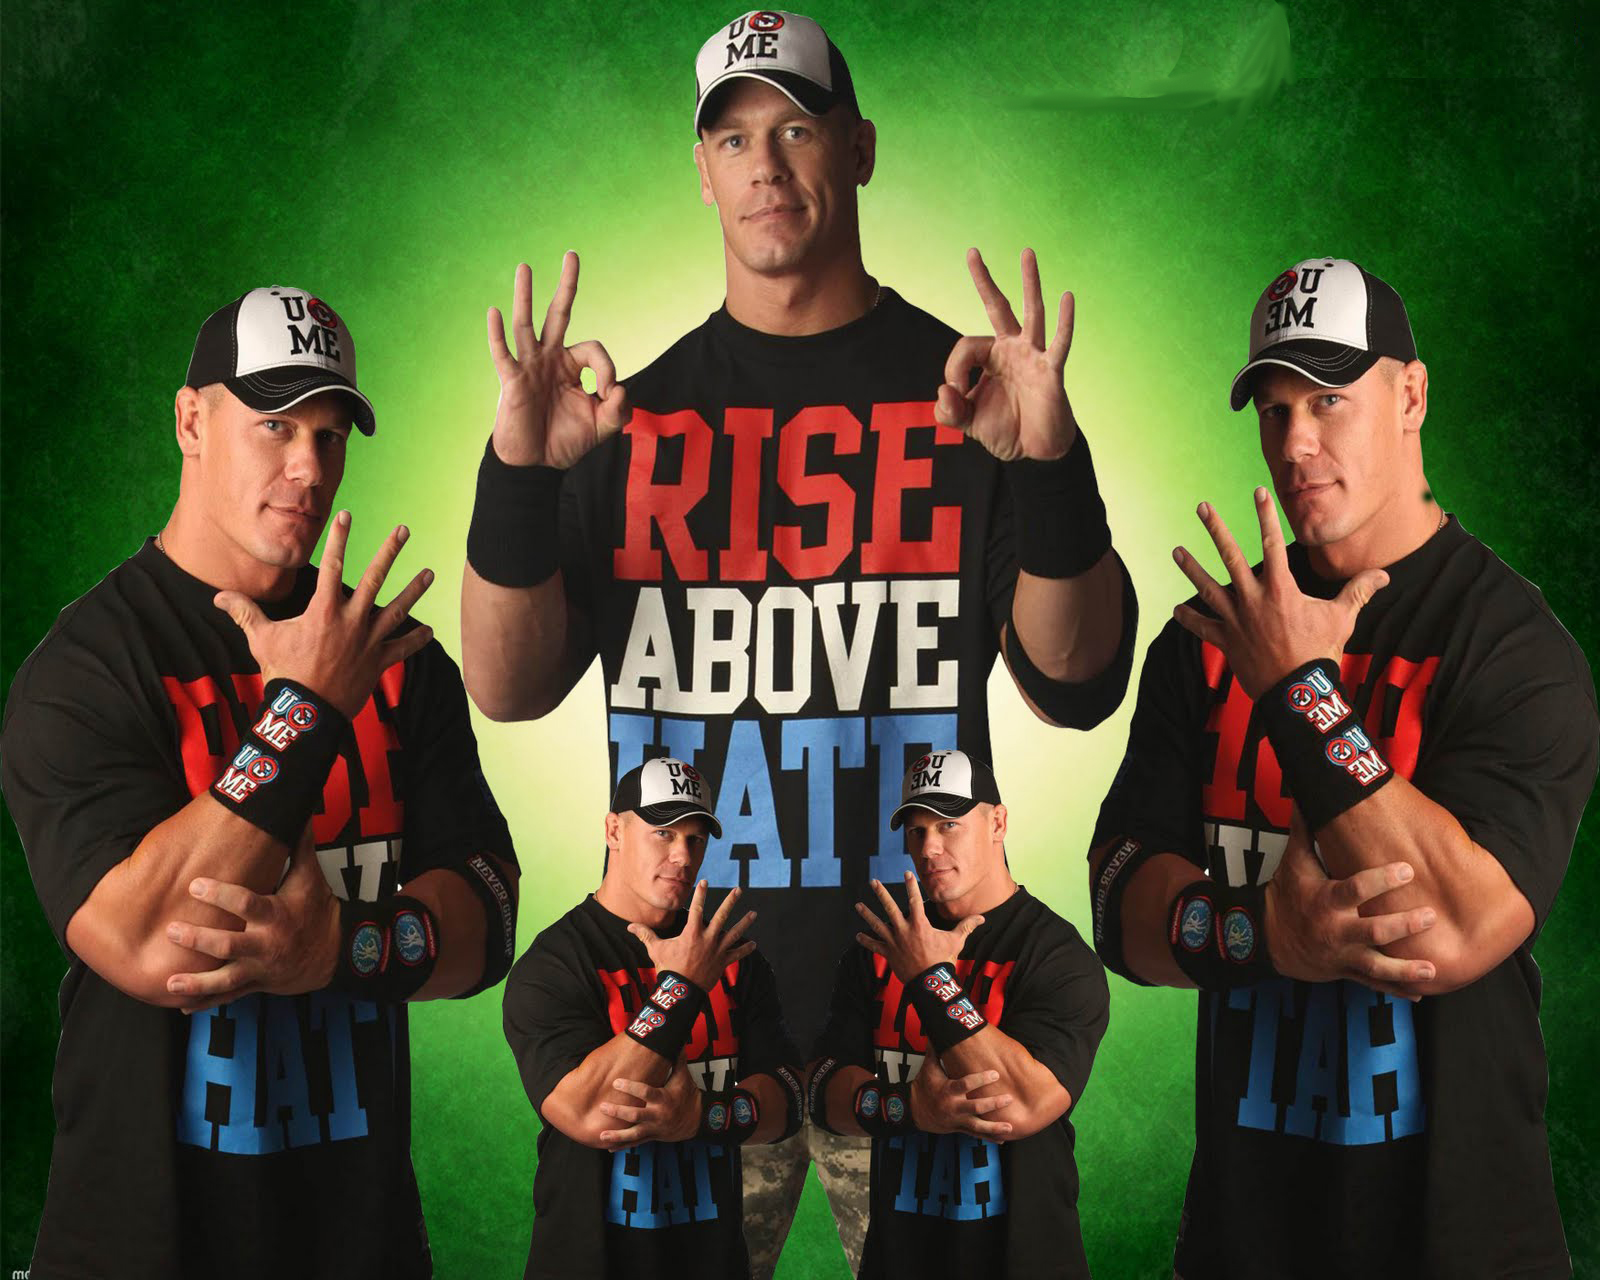 The Wallpapers: John Cena